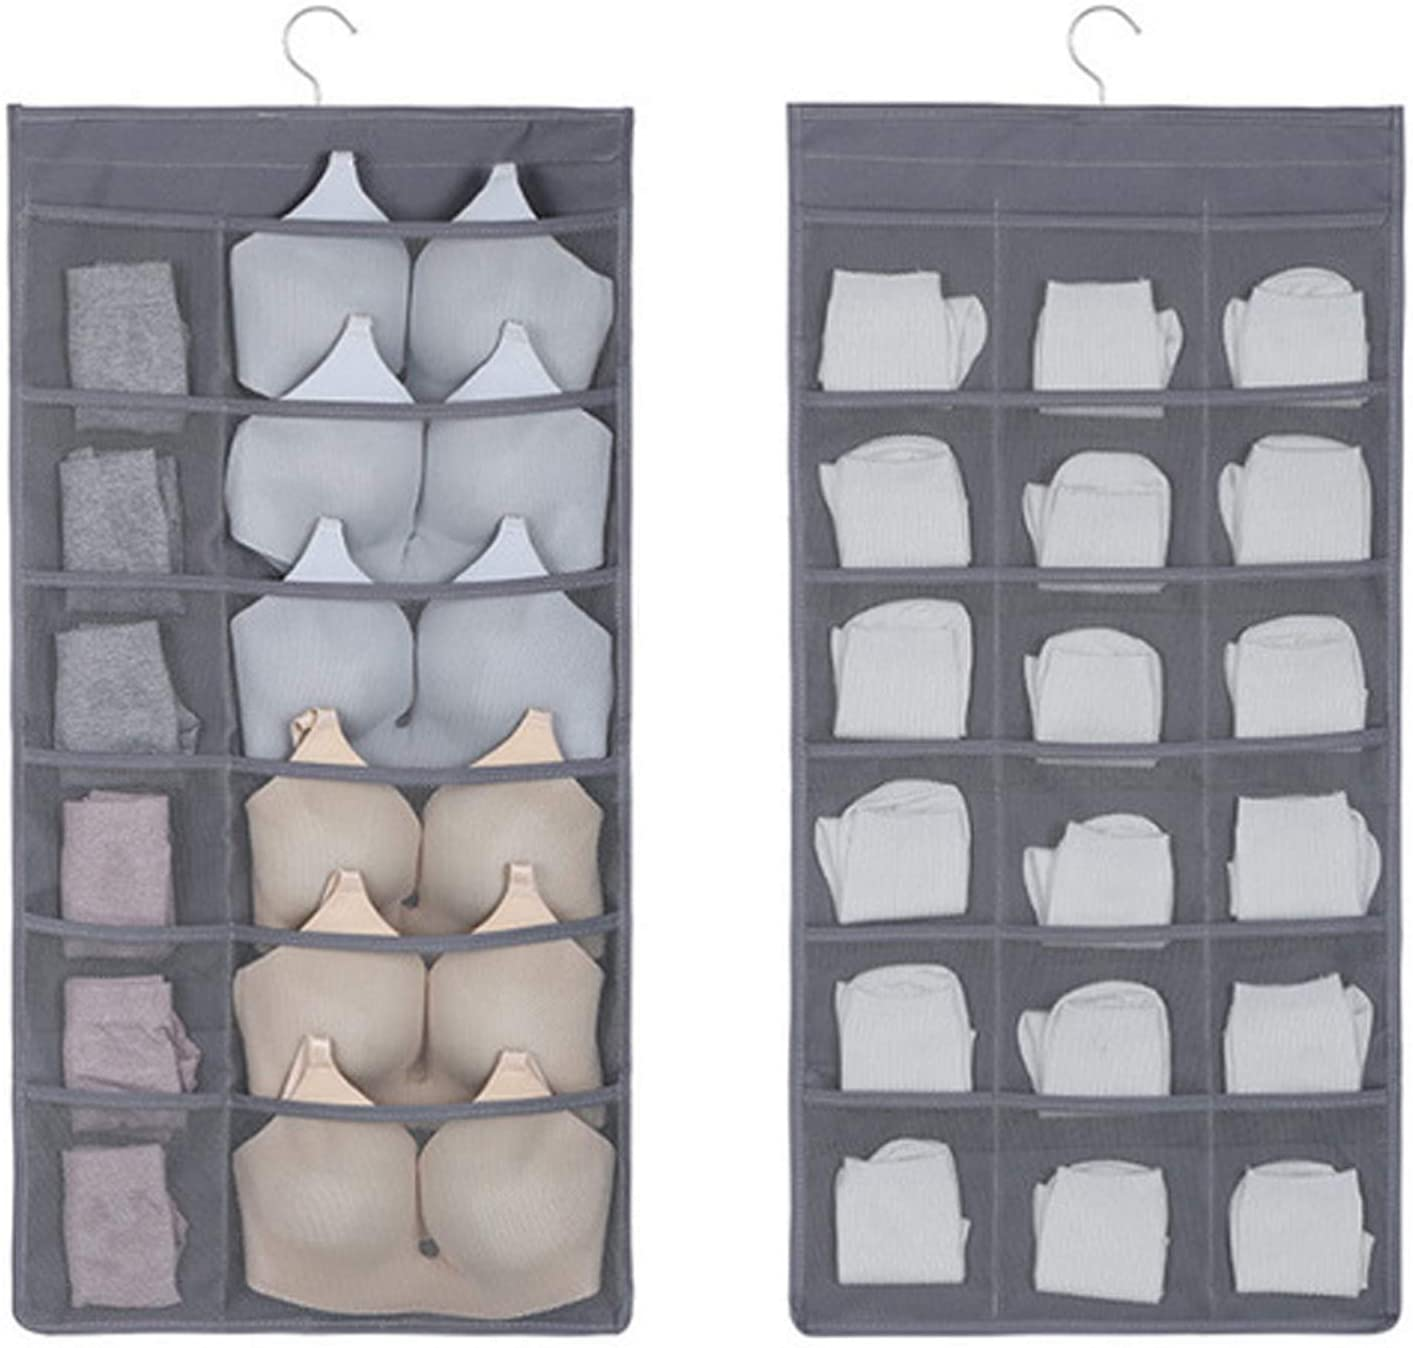 2-Pcs Dual-Sided Hanging Closet Organizer Wardrobe Bra Storage Bags with 30 Mesh Pockets Over The Closet Oxford Fabric Hanging Clothes Organizer Storage Bag for Underwear Stocking Bra Sock(Grey)